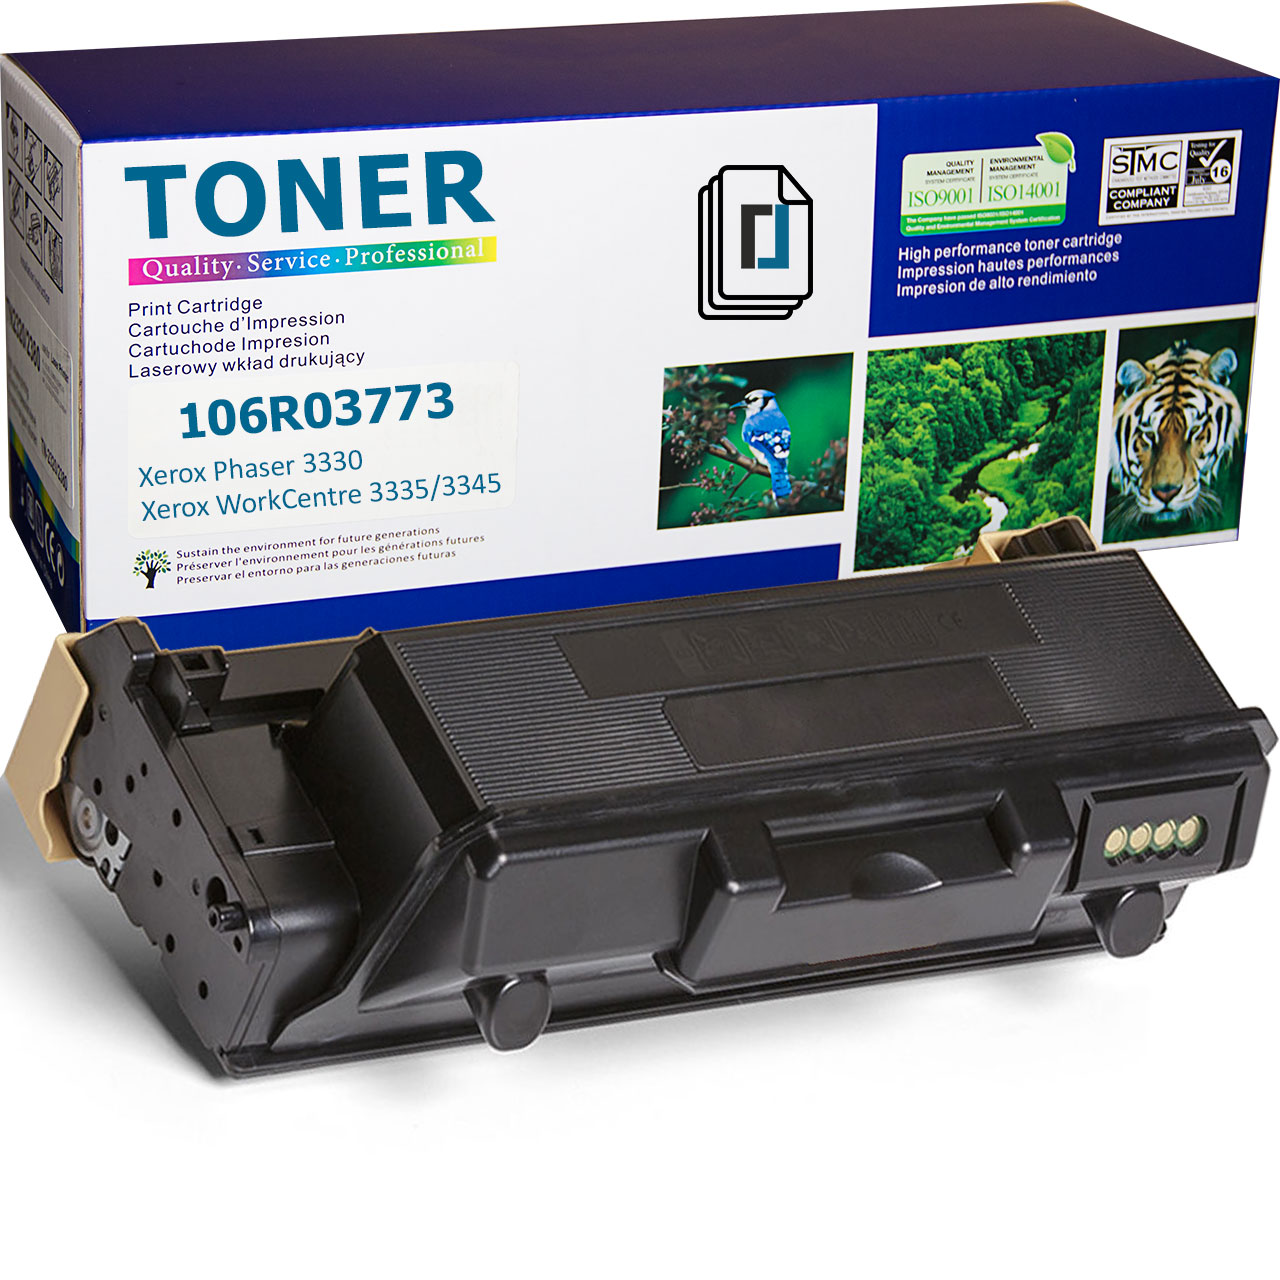 106R03773 Toner Cartridge compatible with Xerox WorkCentre 3345